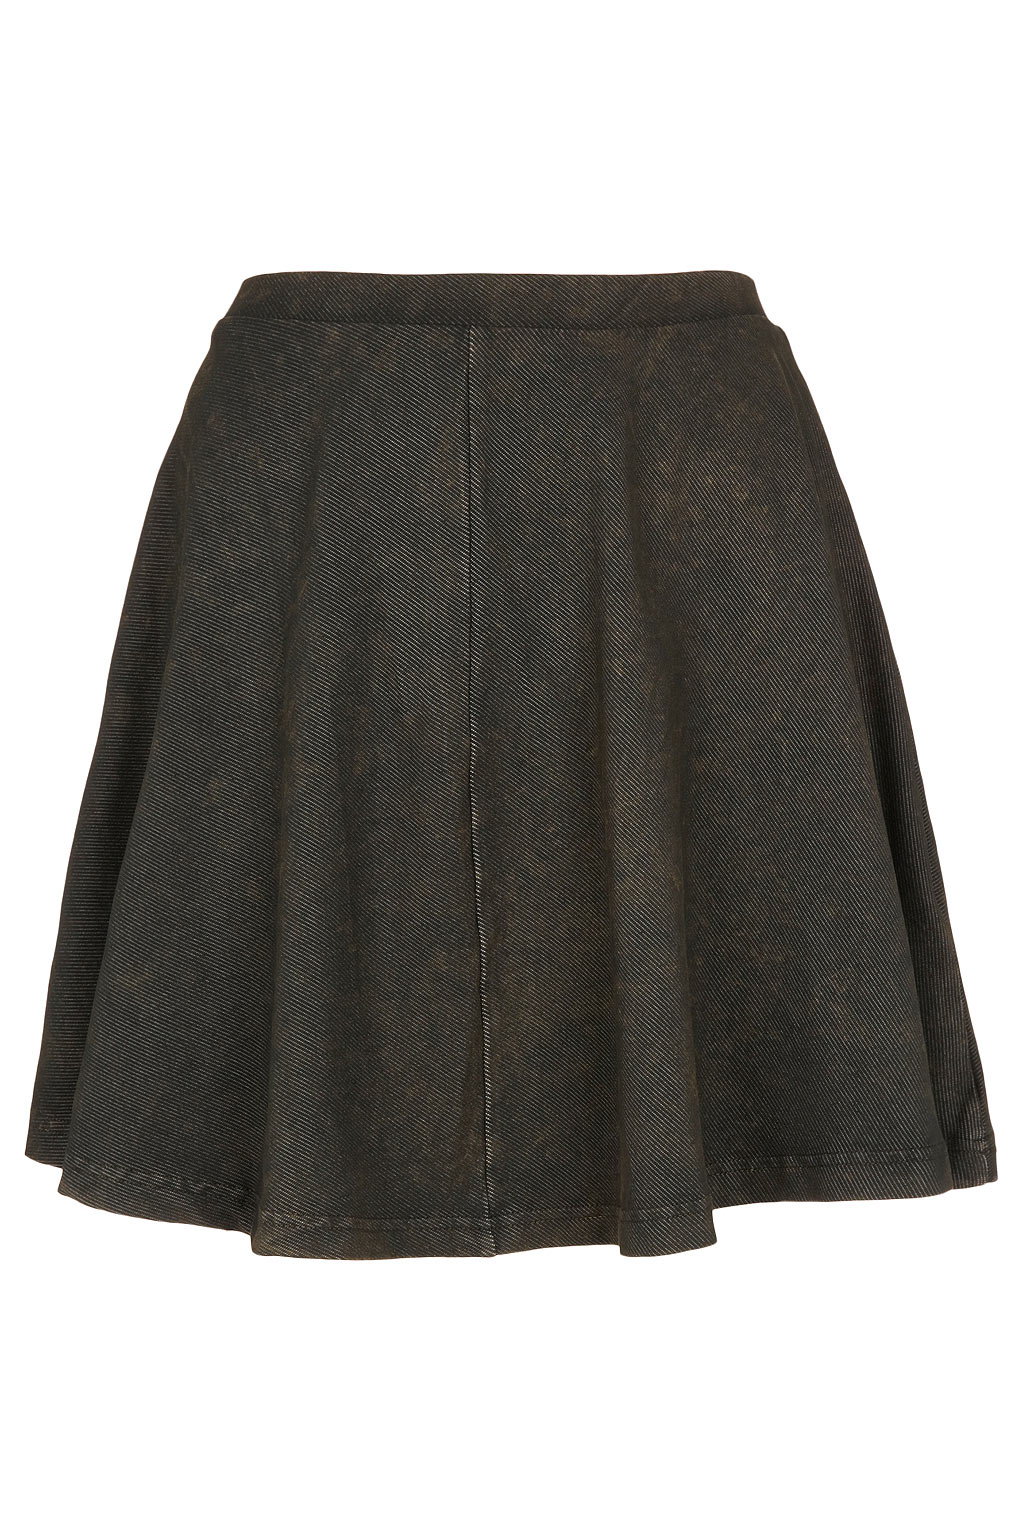 topshop denim look skater skirt in khaki lyst